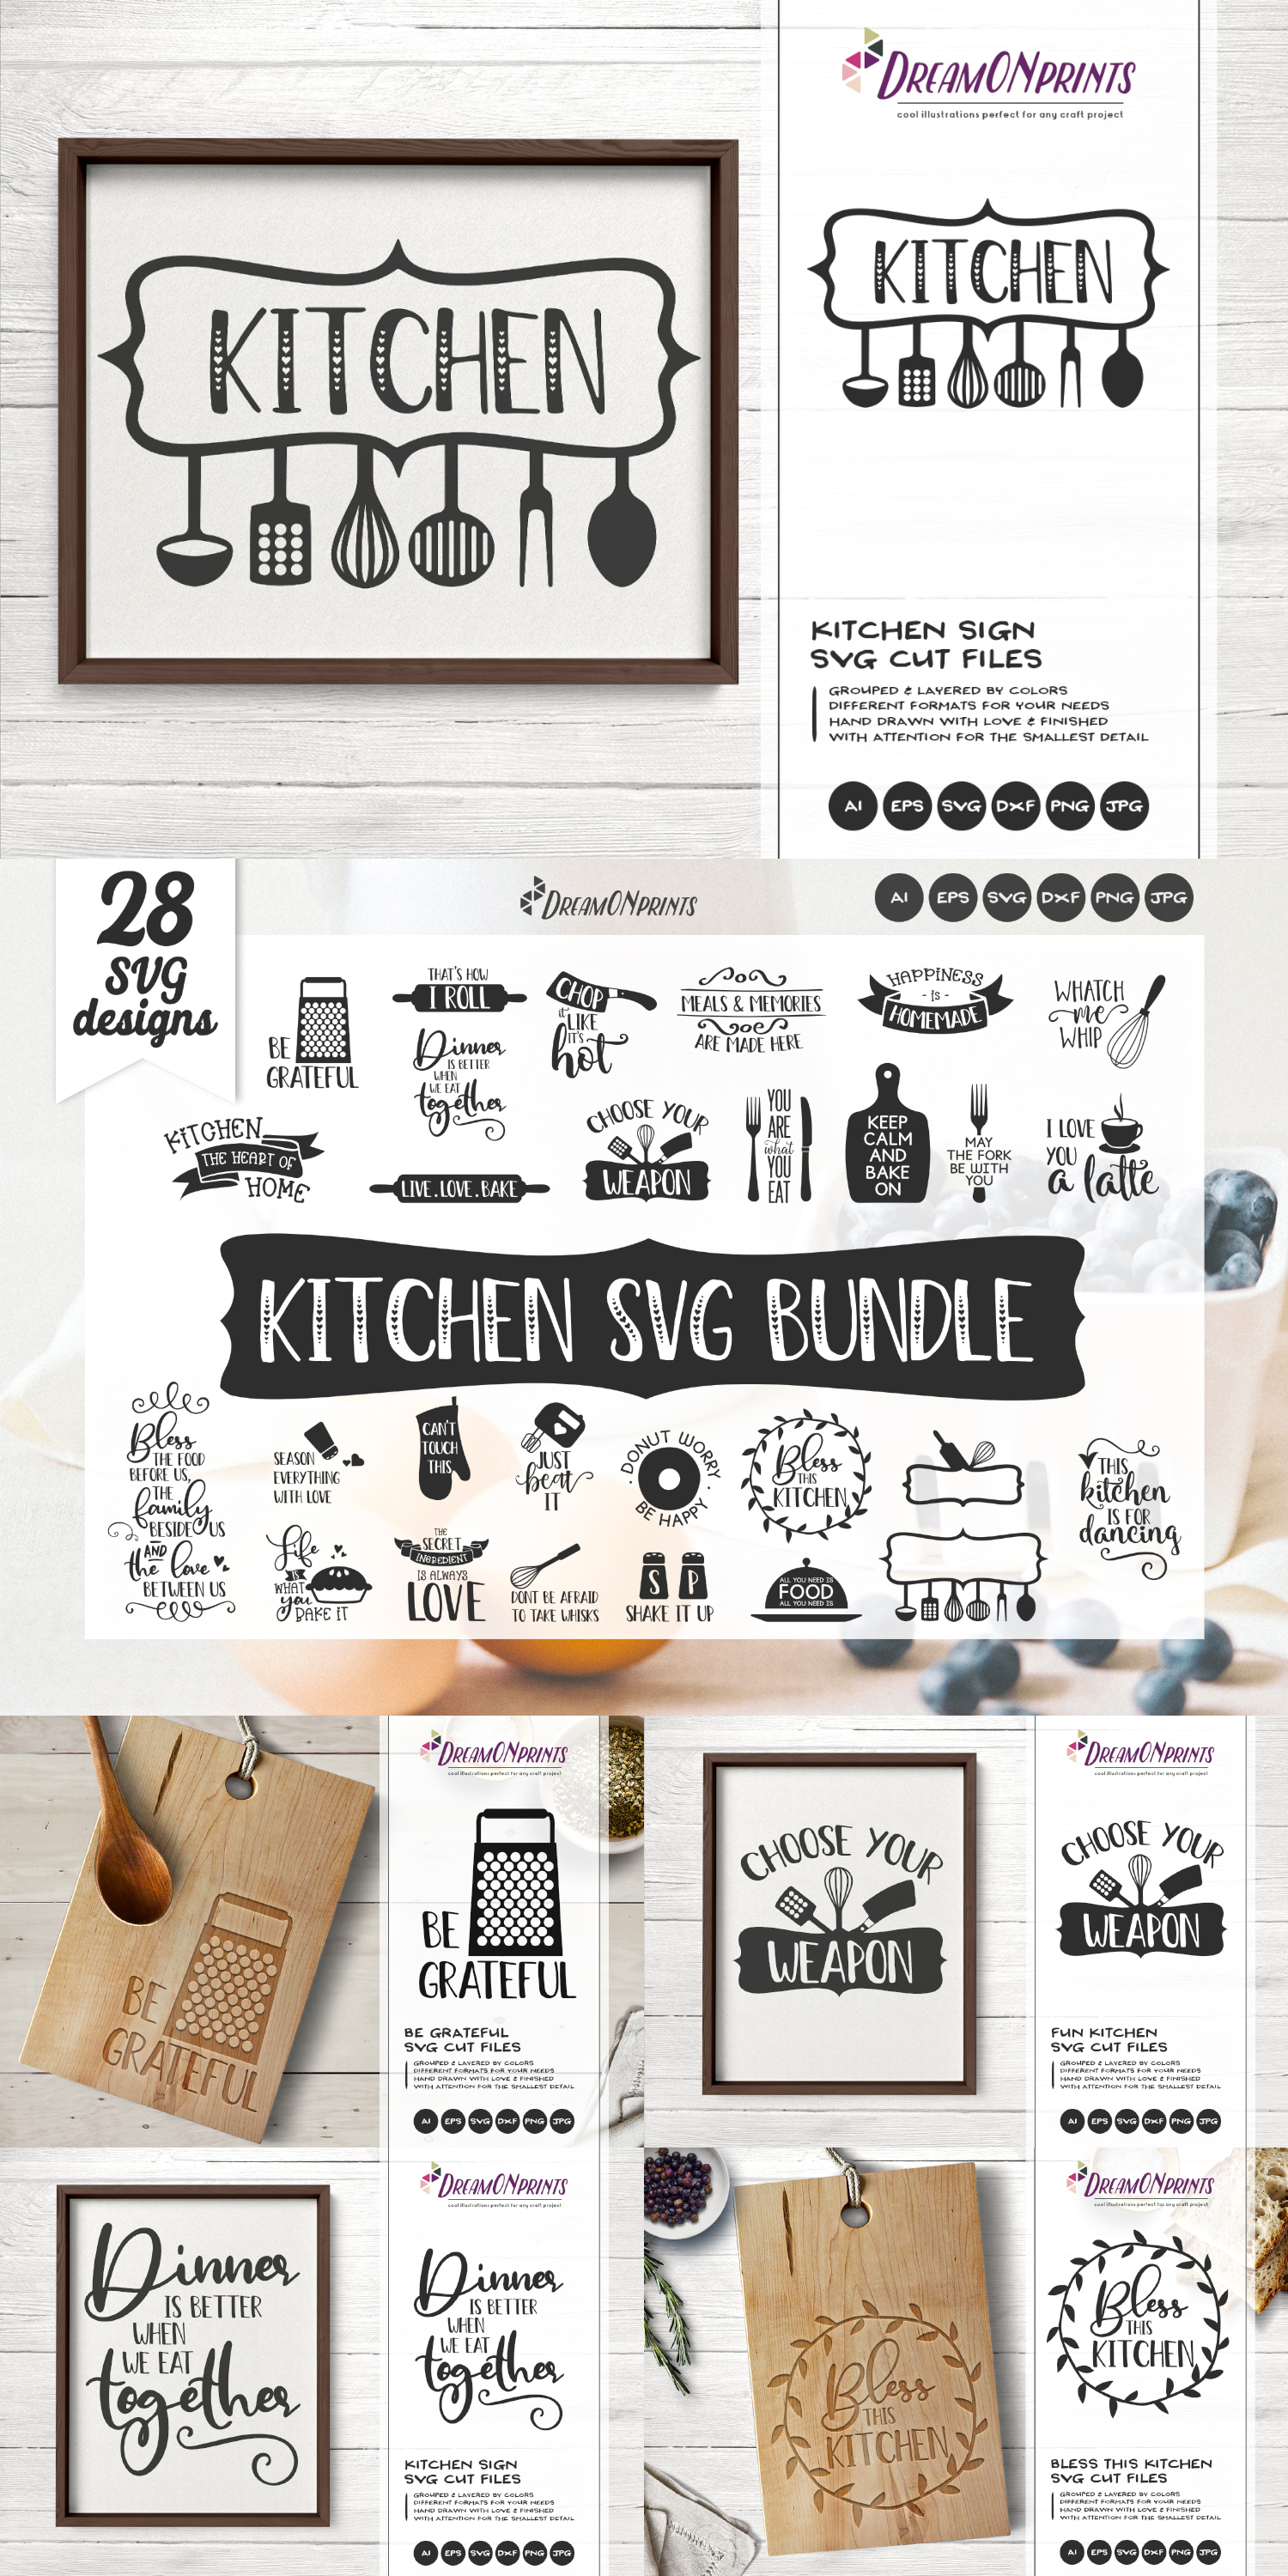 Kitchen SVG Bundle - Kitchen Sign Making SVG example image 2